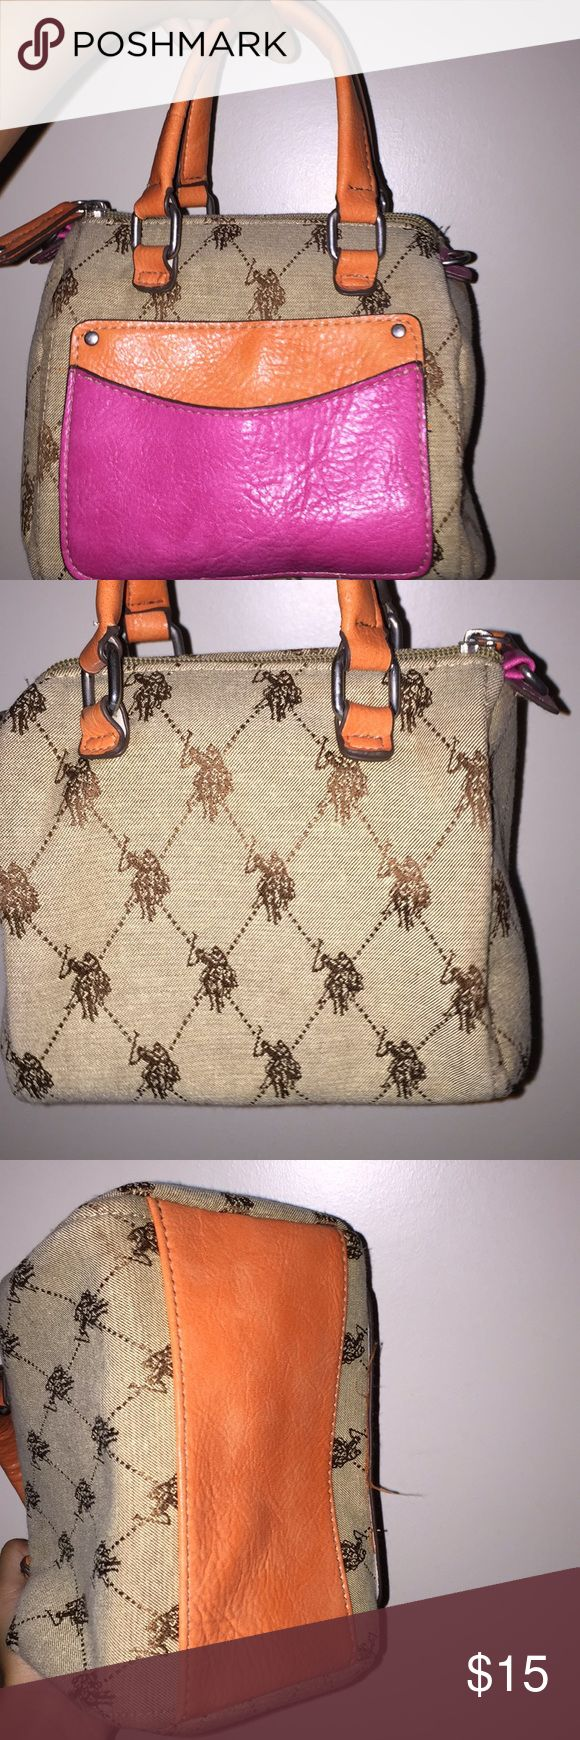 u.s polo mini handbag small , well condition , used twice and very clean no scratches colors are orange pink brown and tan U.S. Polo Assn. Bags Mini Bags